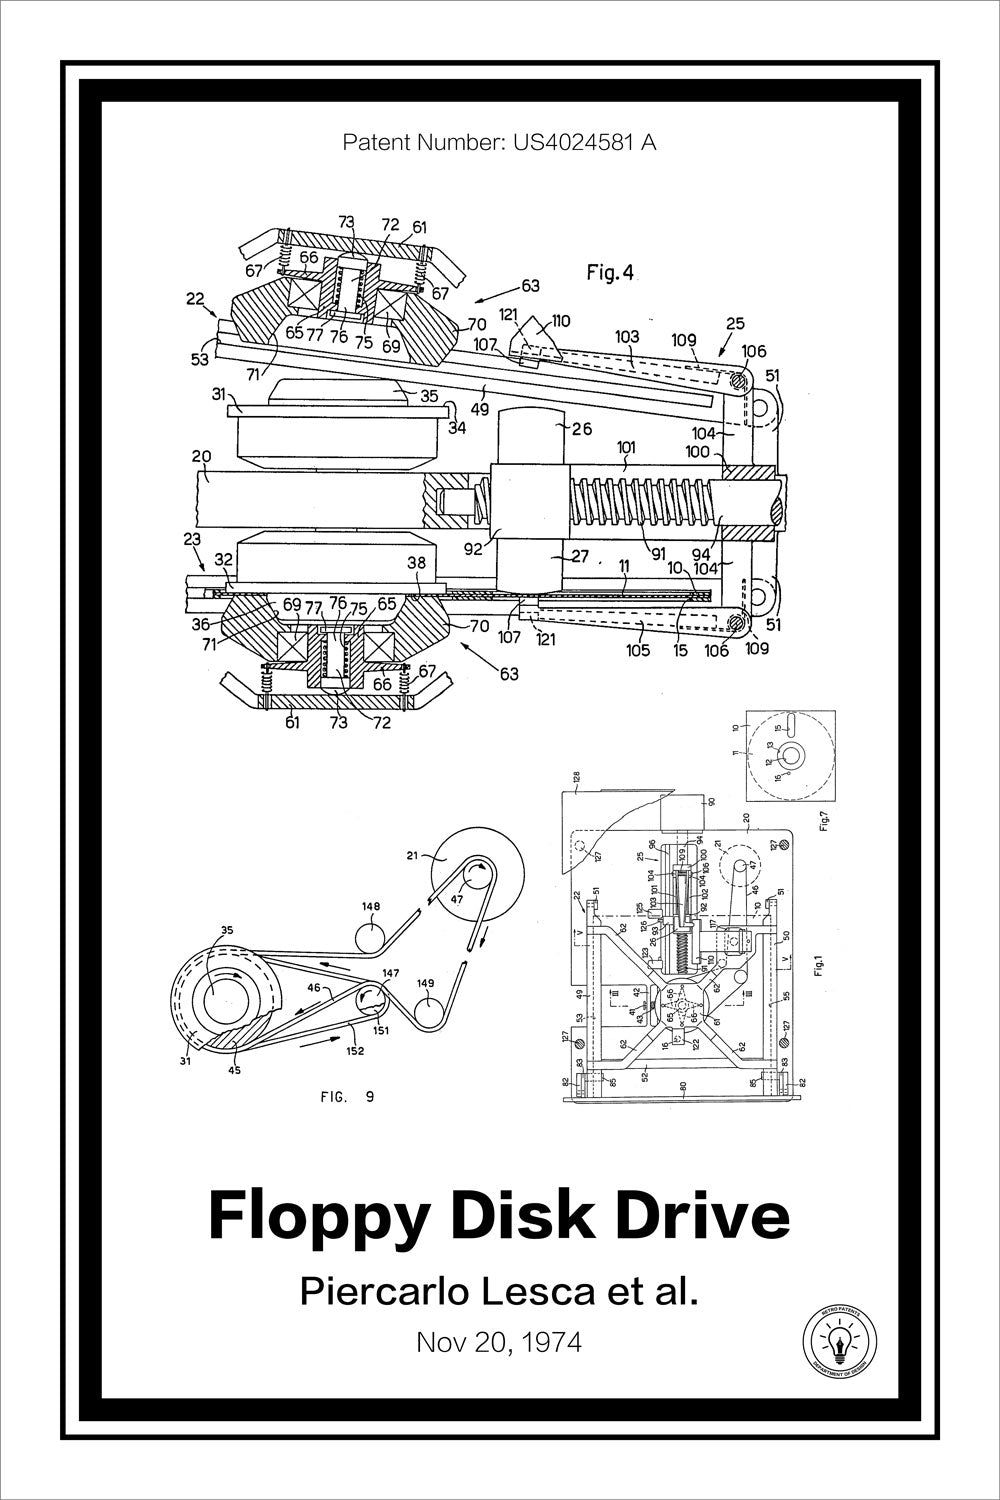 Floppy Disk Drive Diagram Wiring Library Diagramquot On The Left And Of Six Way 4 Pole Rotary Patent Print Retro Patents Internal Hard